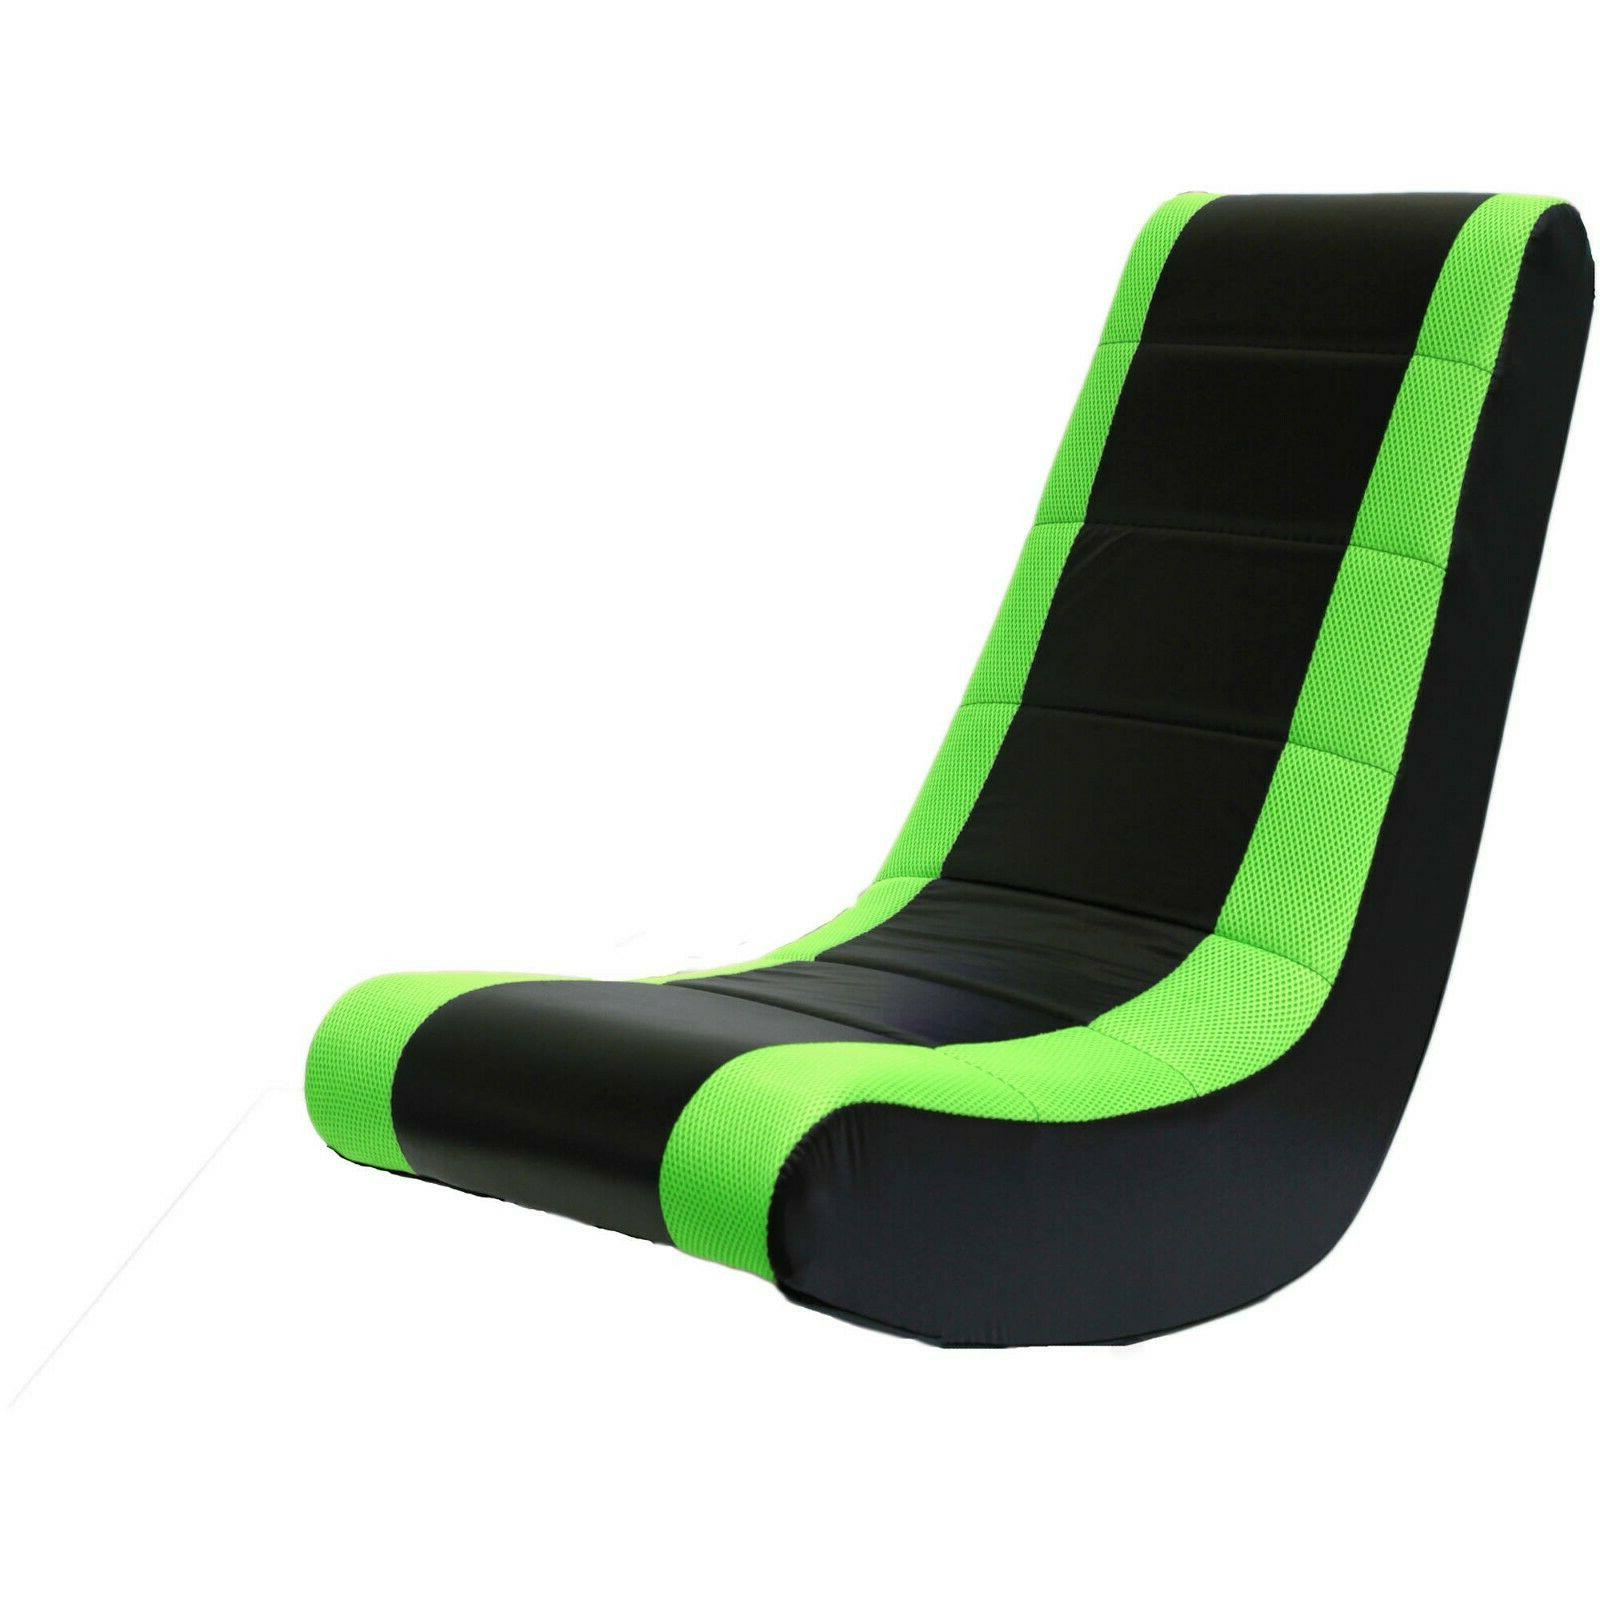 Cheap Gaming Chair Video Game Chairs For Kids Best XL Rockin